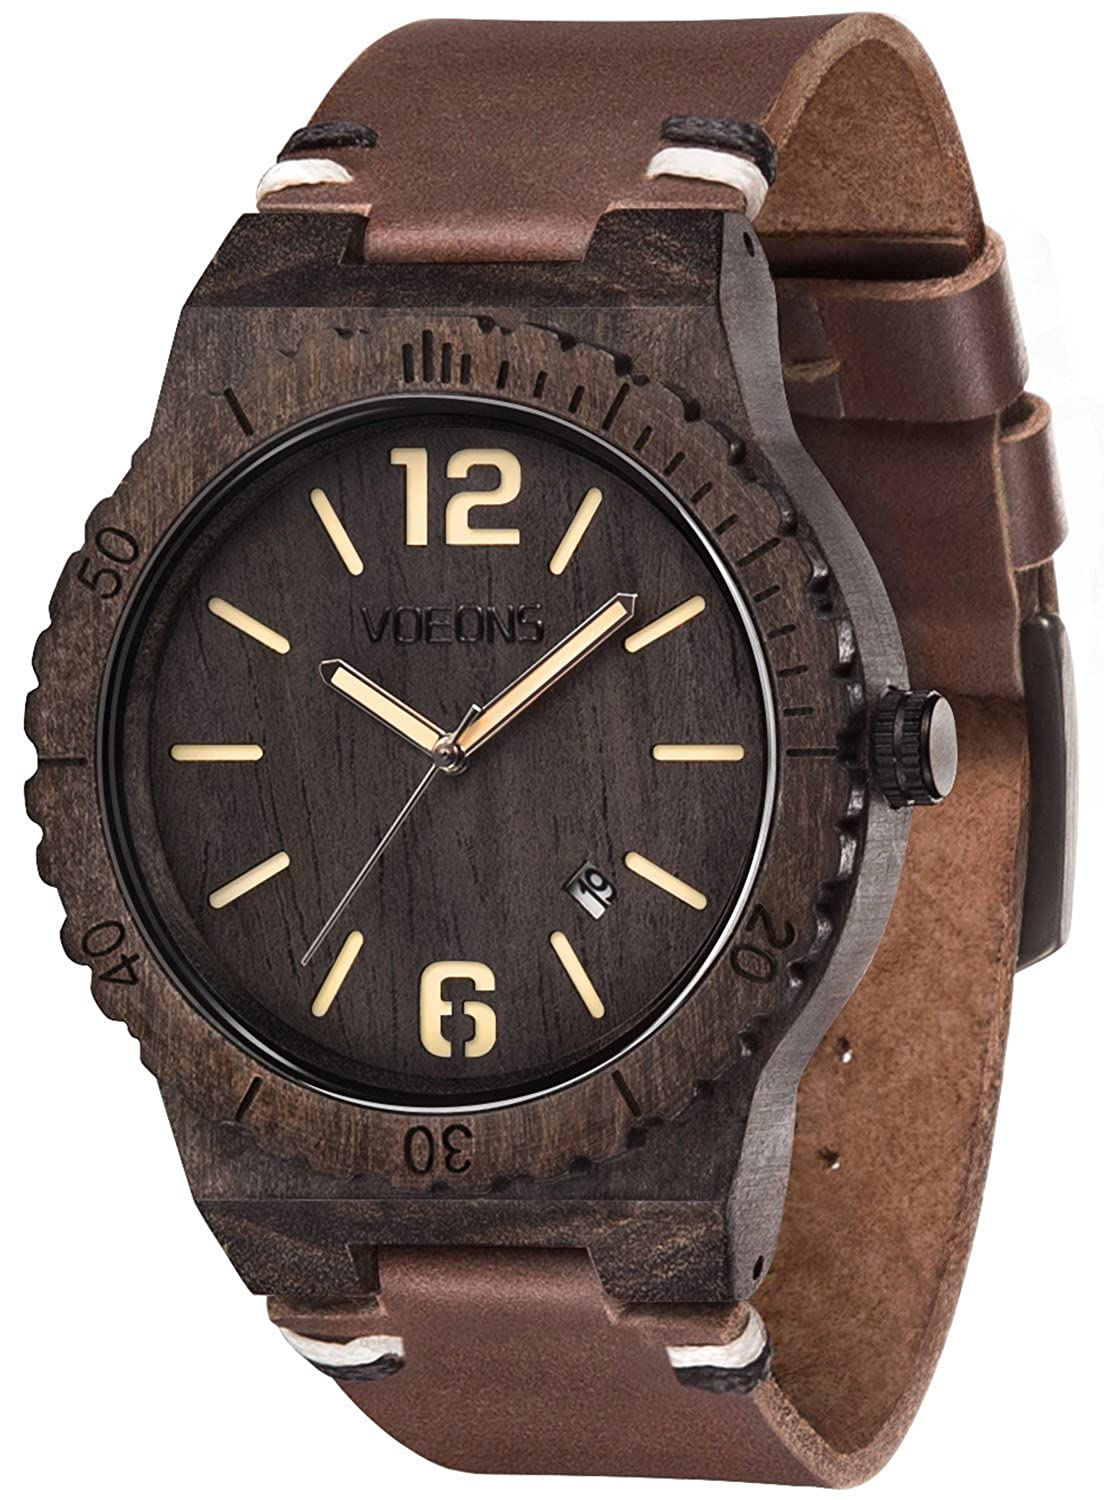 VOEONS Men's Wooden Case Watch with Leather Strap …